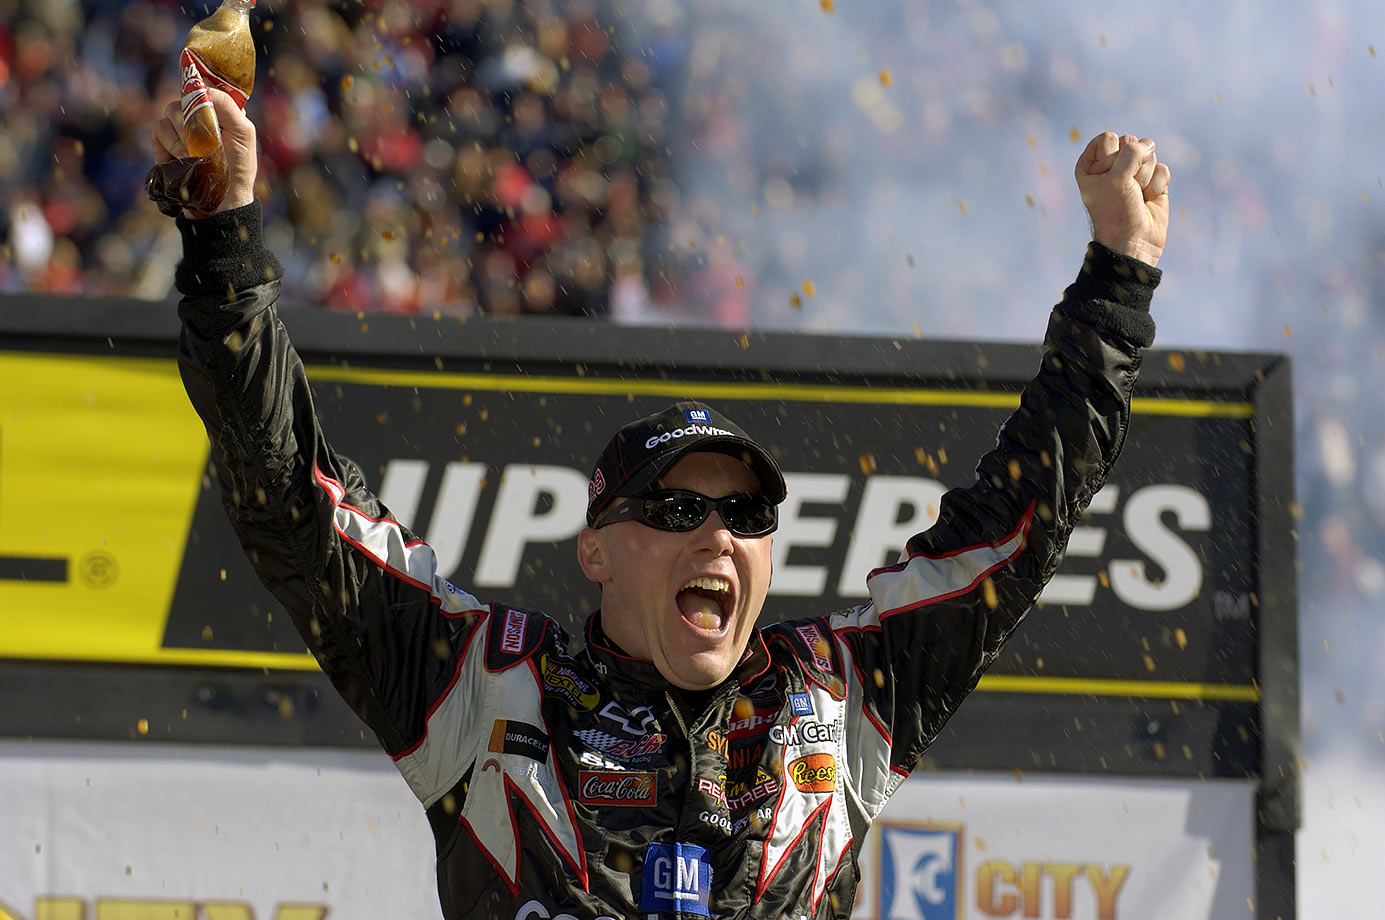 Kevin Harvick celebrates in Victory Lane after winning the Food City 500 race at Bristol Motor Speedway on April 3, 2005.